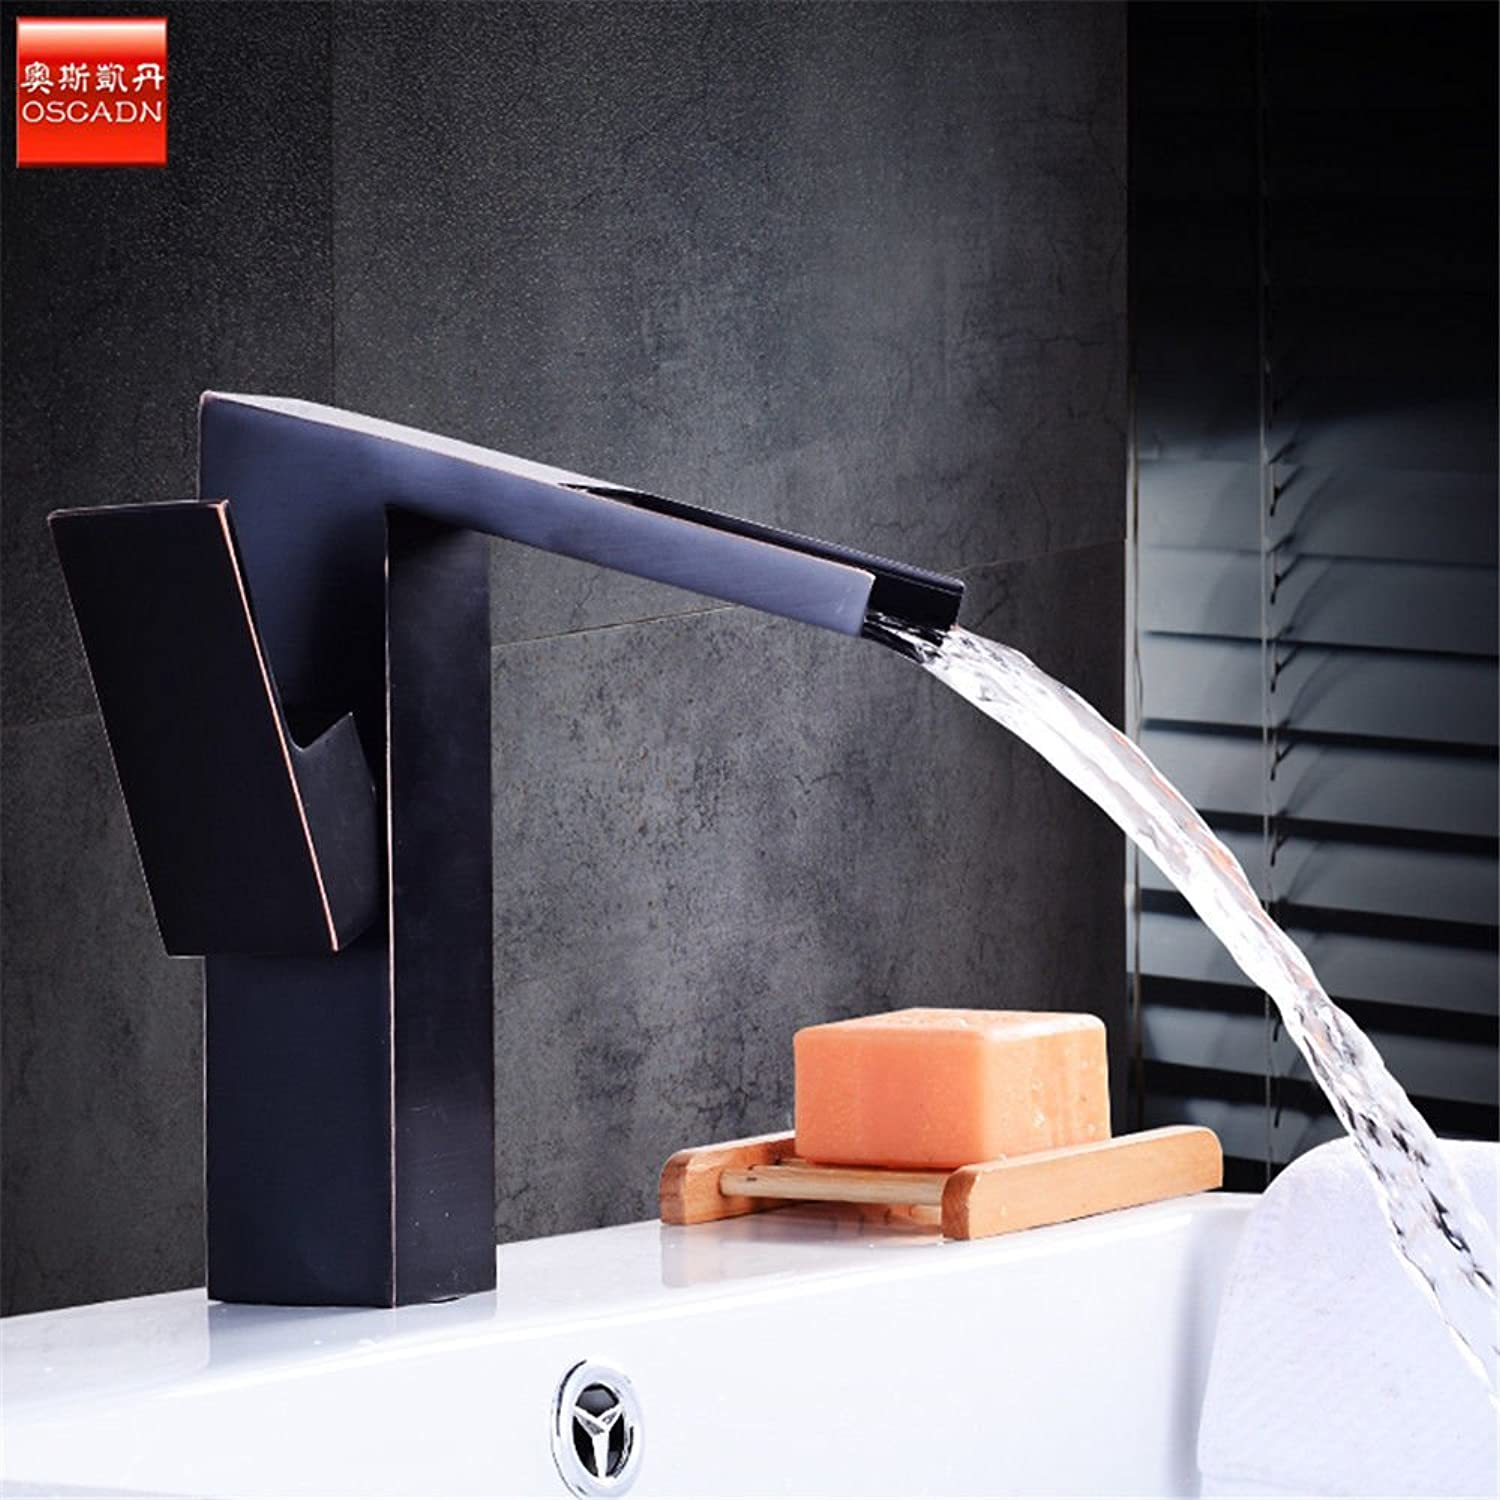 Fbict Copper hot and Cold Basin Faucet Black Bronze wash Basin Basin Faucet Heightening Waterfall Faucet for Kitchen Bathroom Faucet Bid Tap